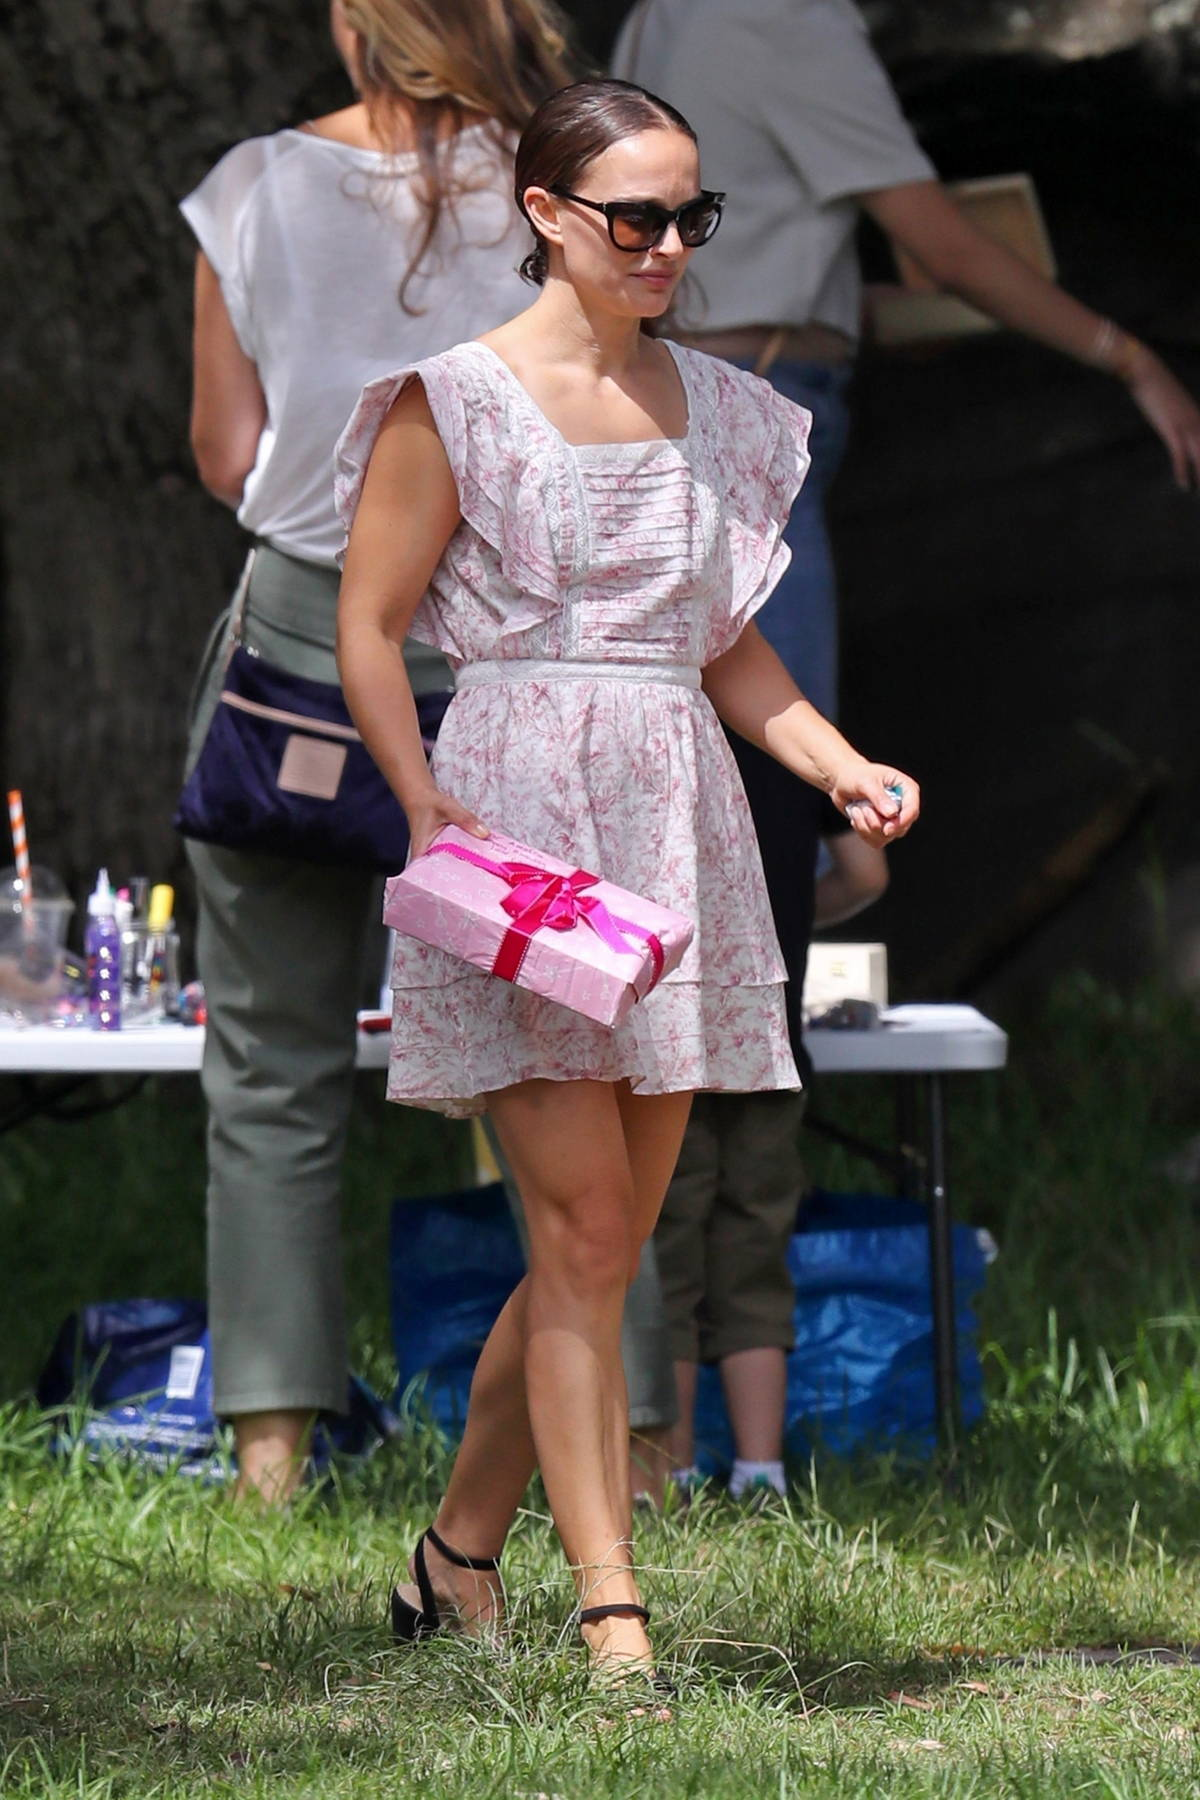 Natalie Portman and Benjamin Millepied are seen celebrating at their daughter's birthday in Sydney, Australia